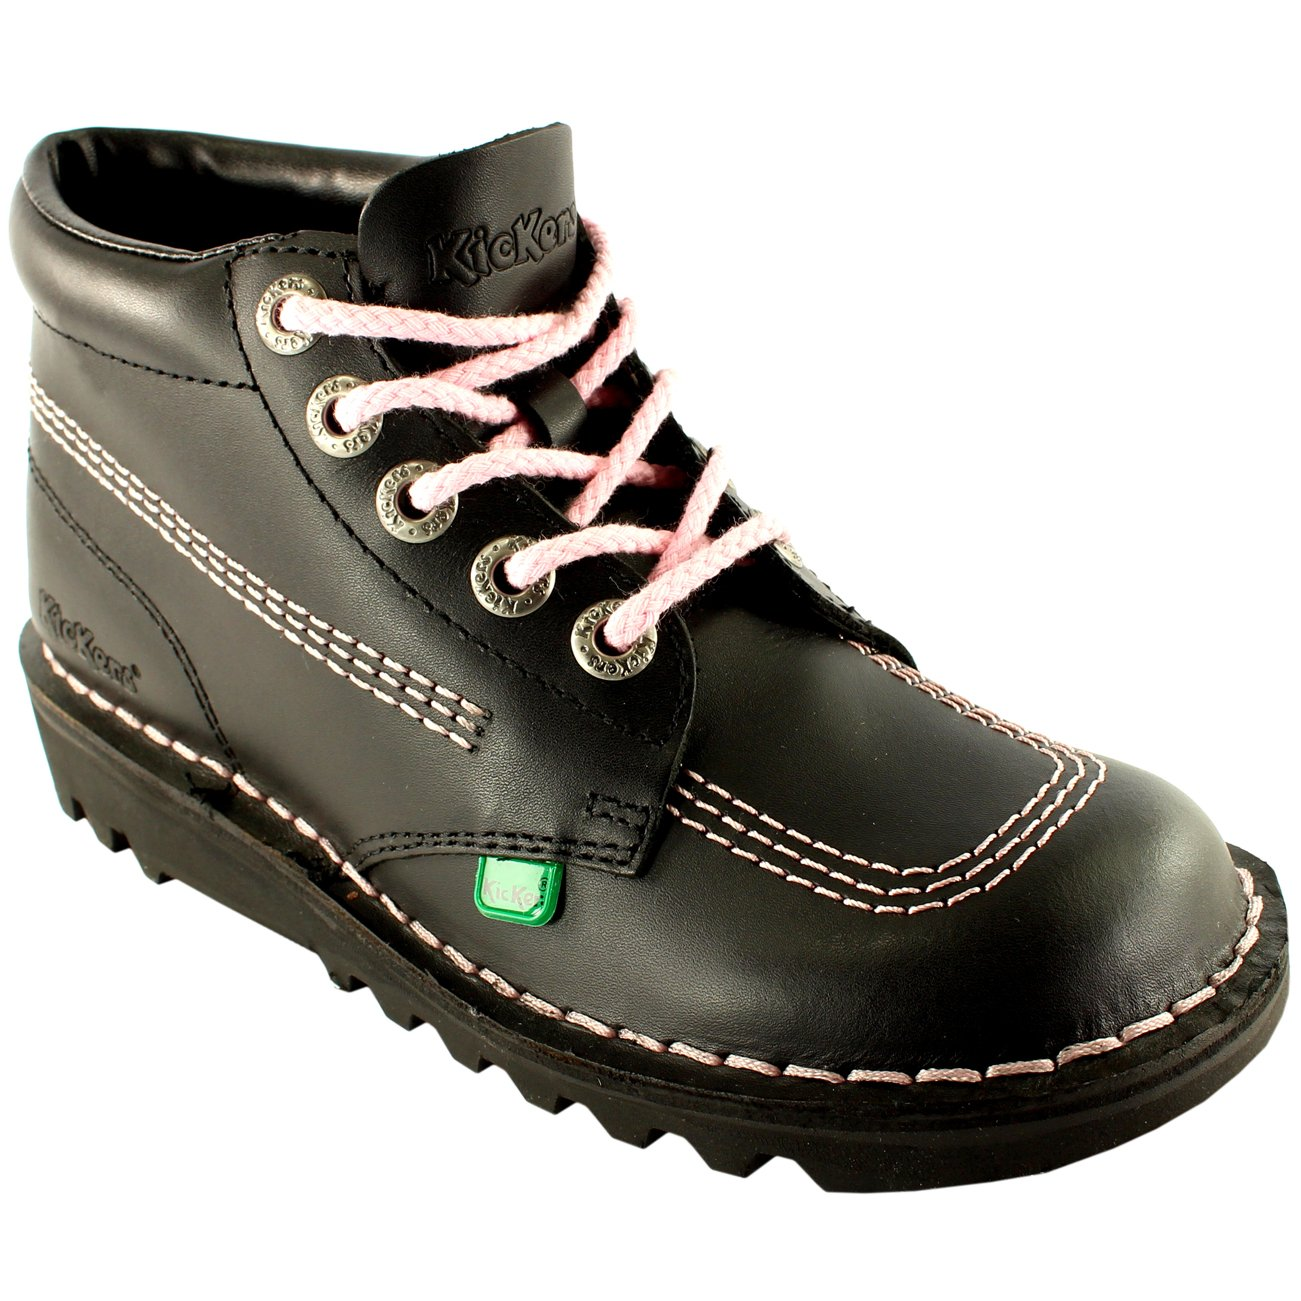 057b8432f6 Kickers Womens Kick Hi Classic Leather Office Work Ankle Boots Shoes -  Black Pink - 11  Amazon.co.uk  Shoes   Bags